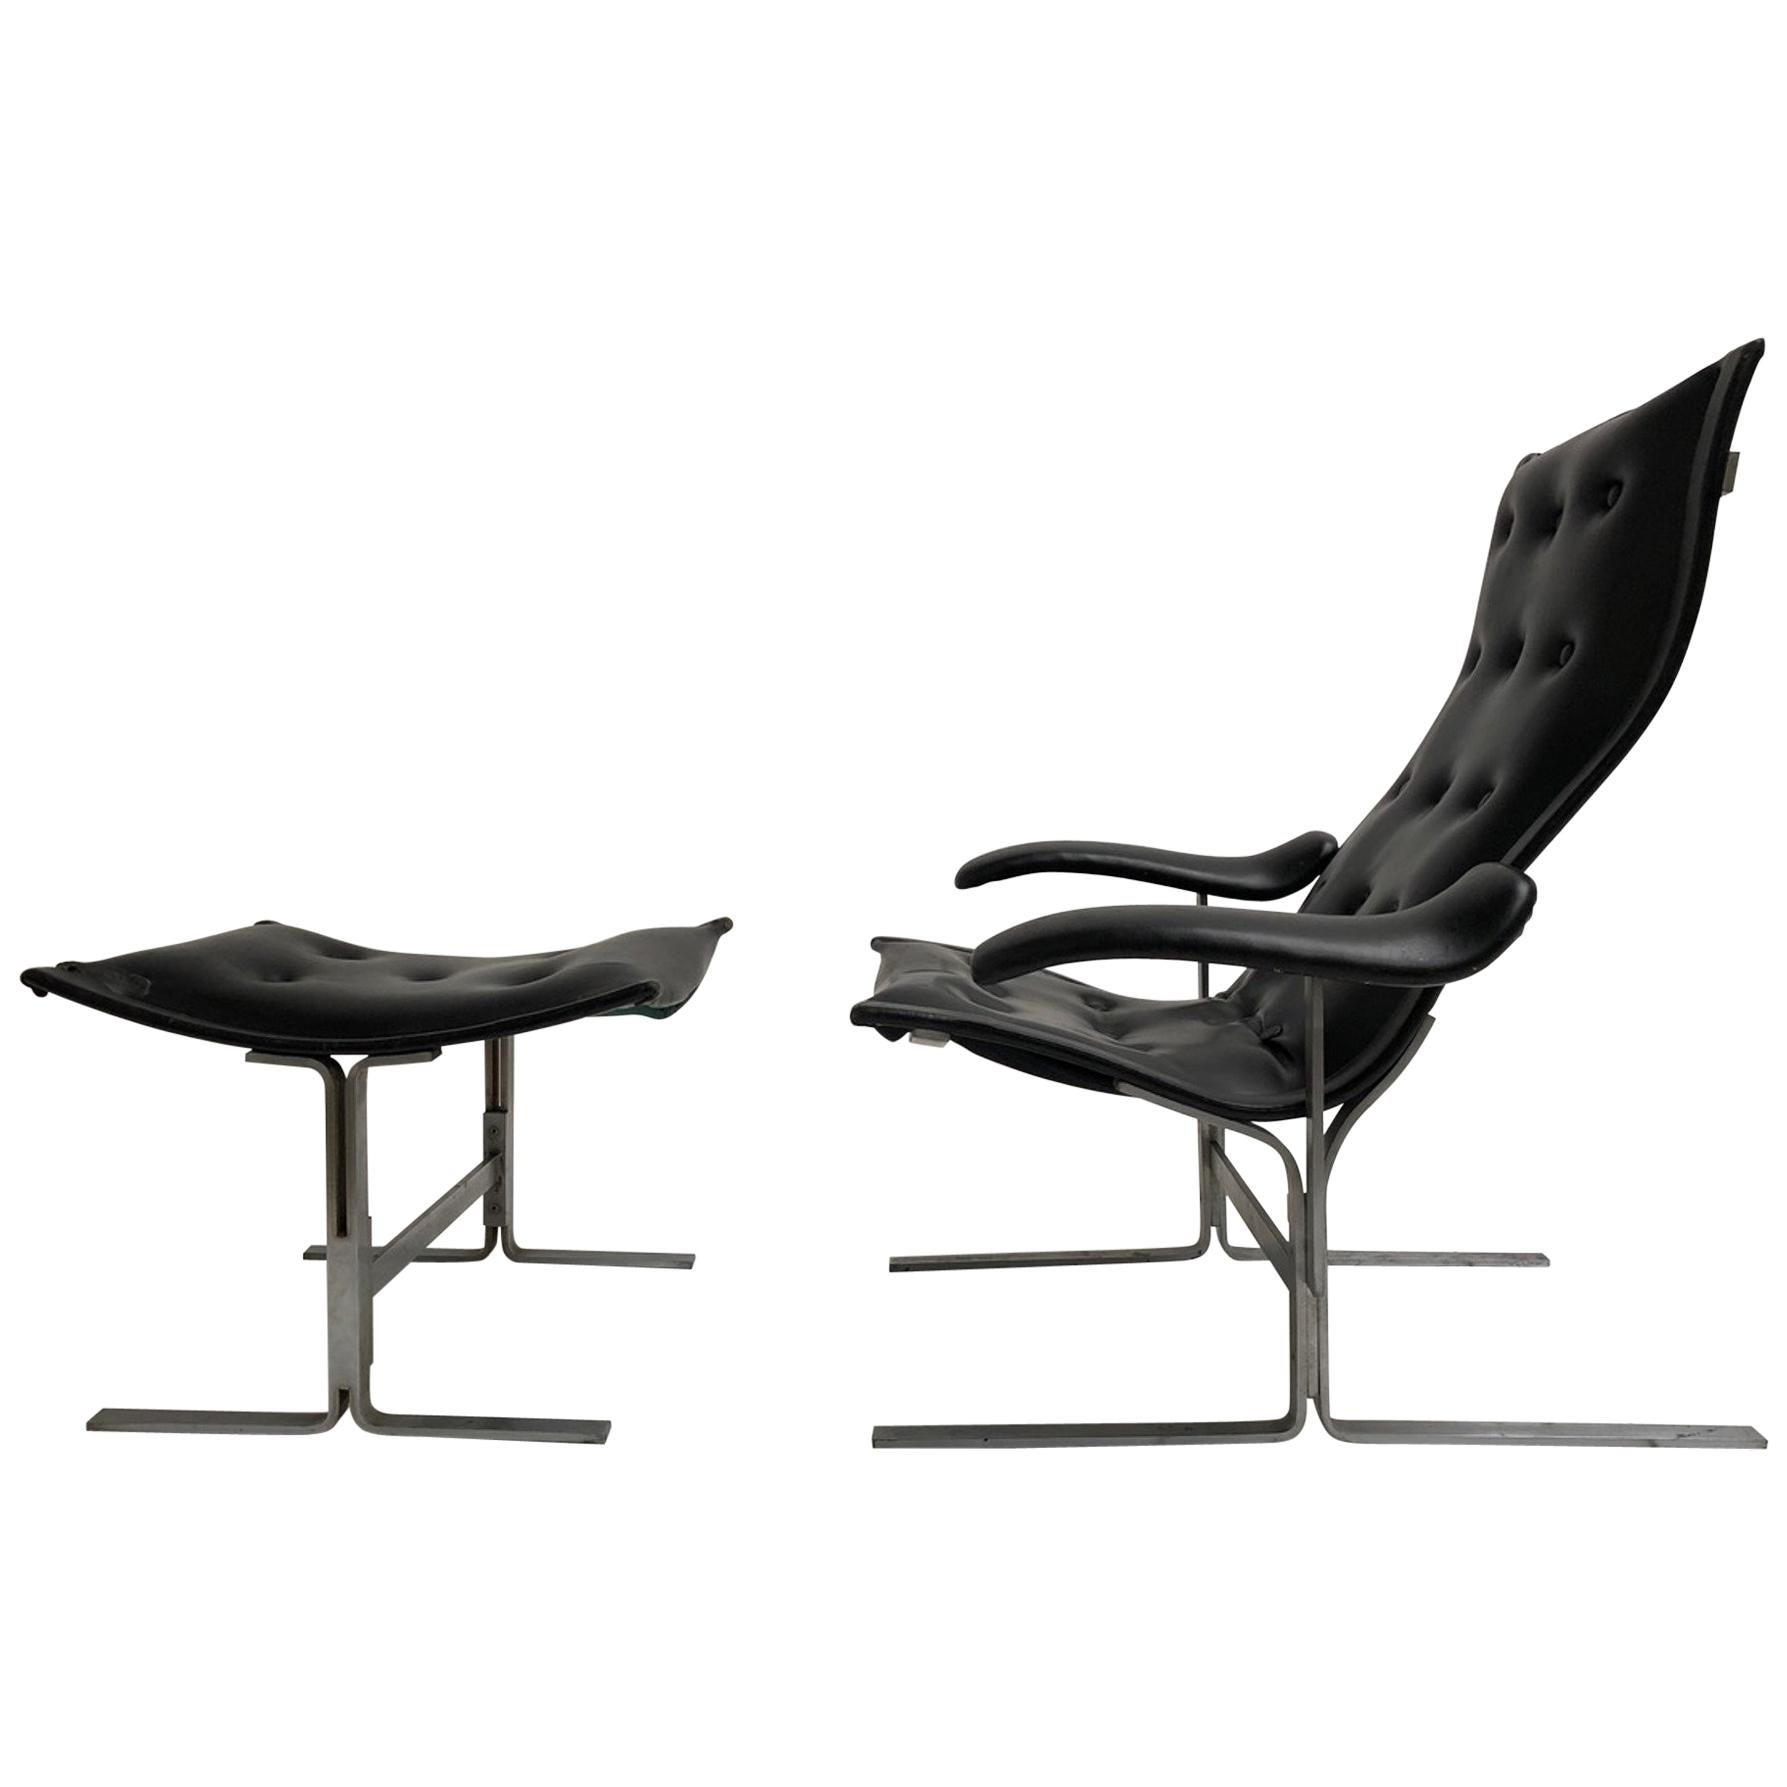 Franco Campo lounge chair & ottoman, 1 of 2 sets ever produced, Authenticated